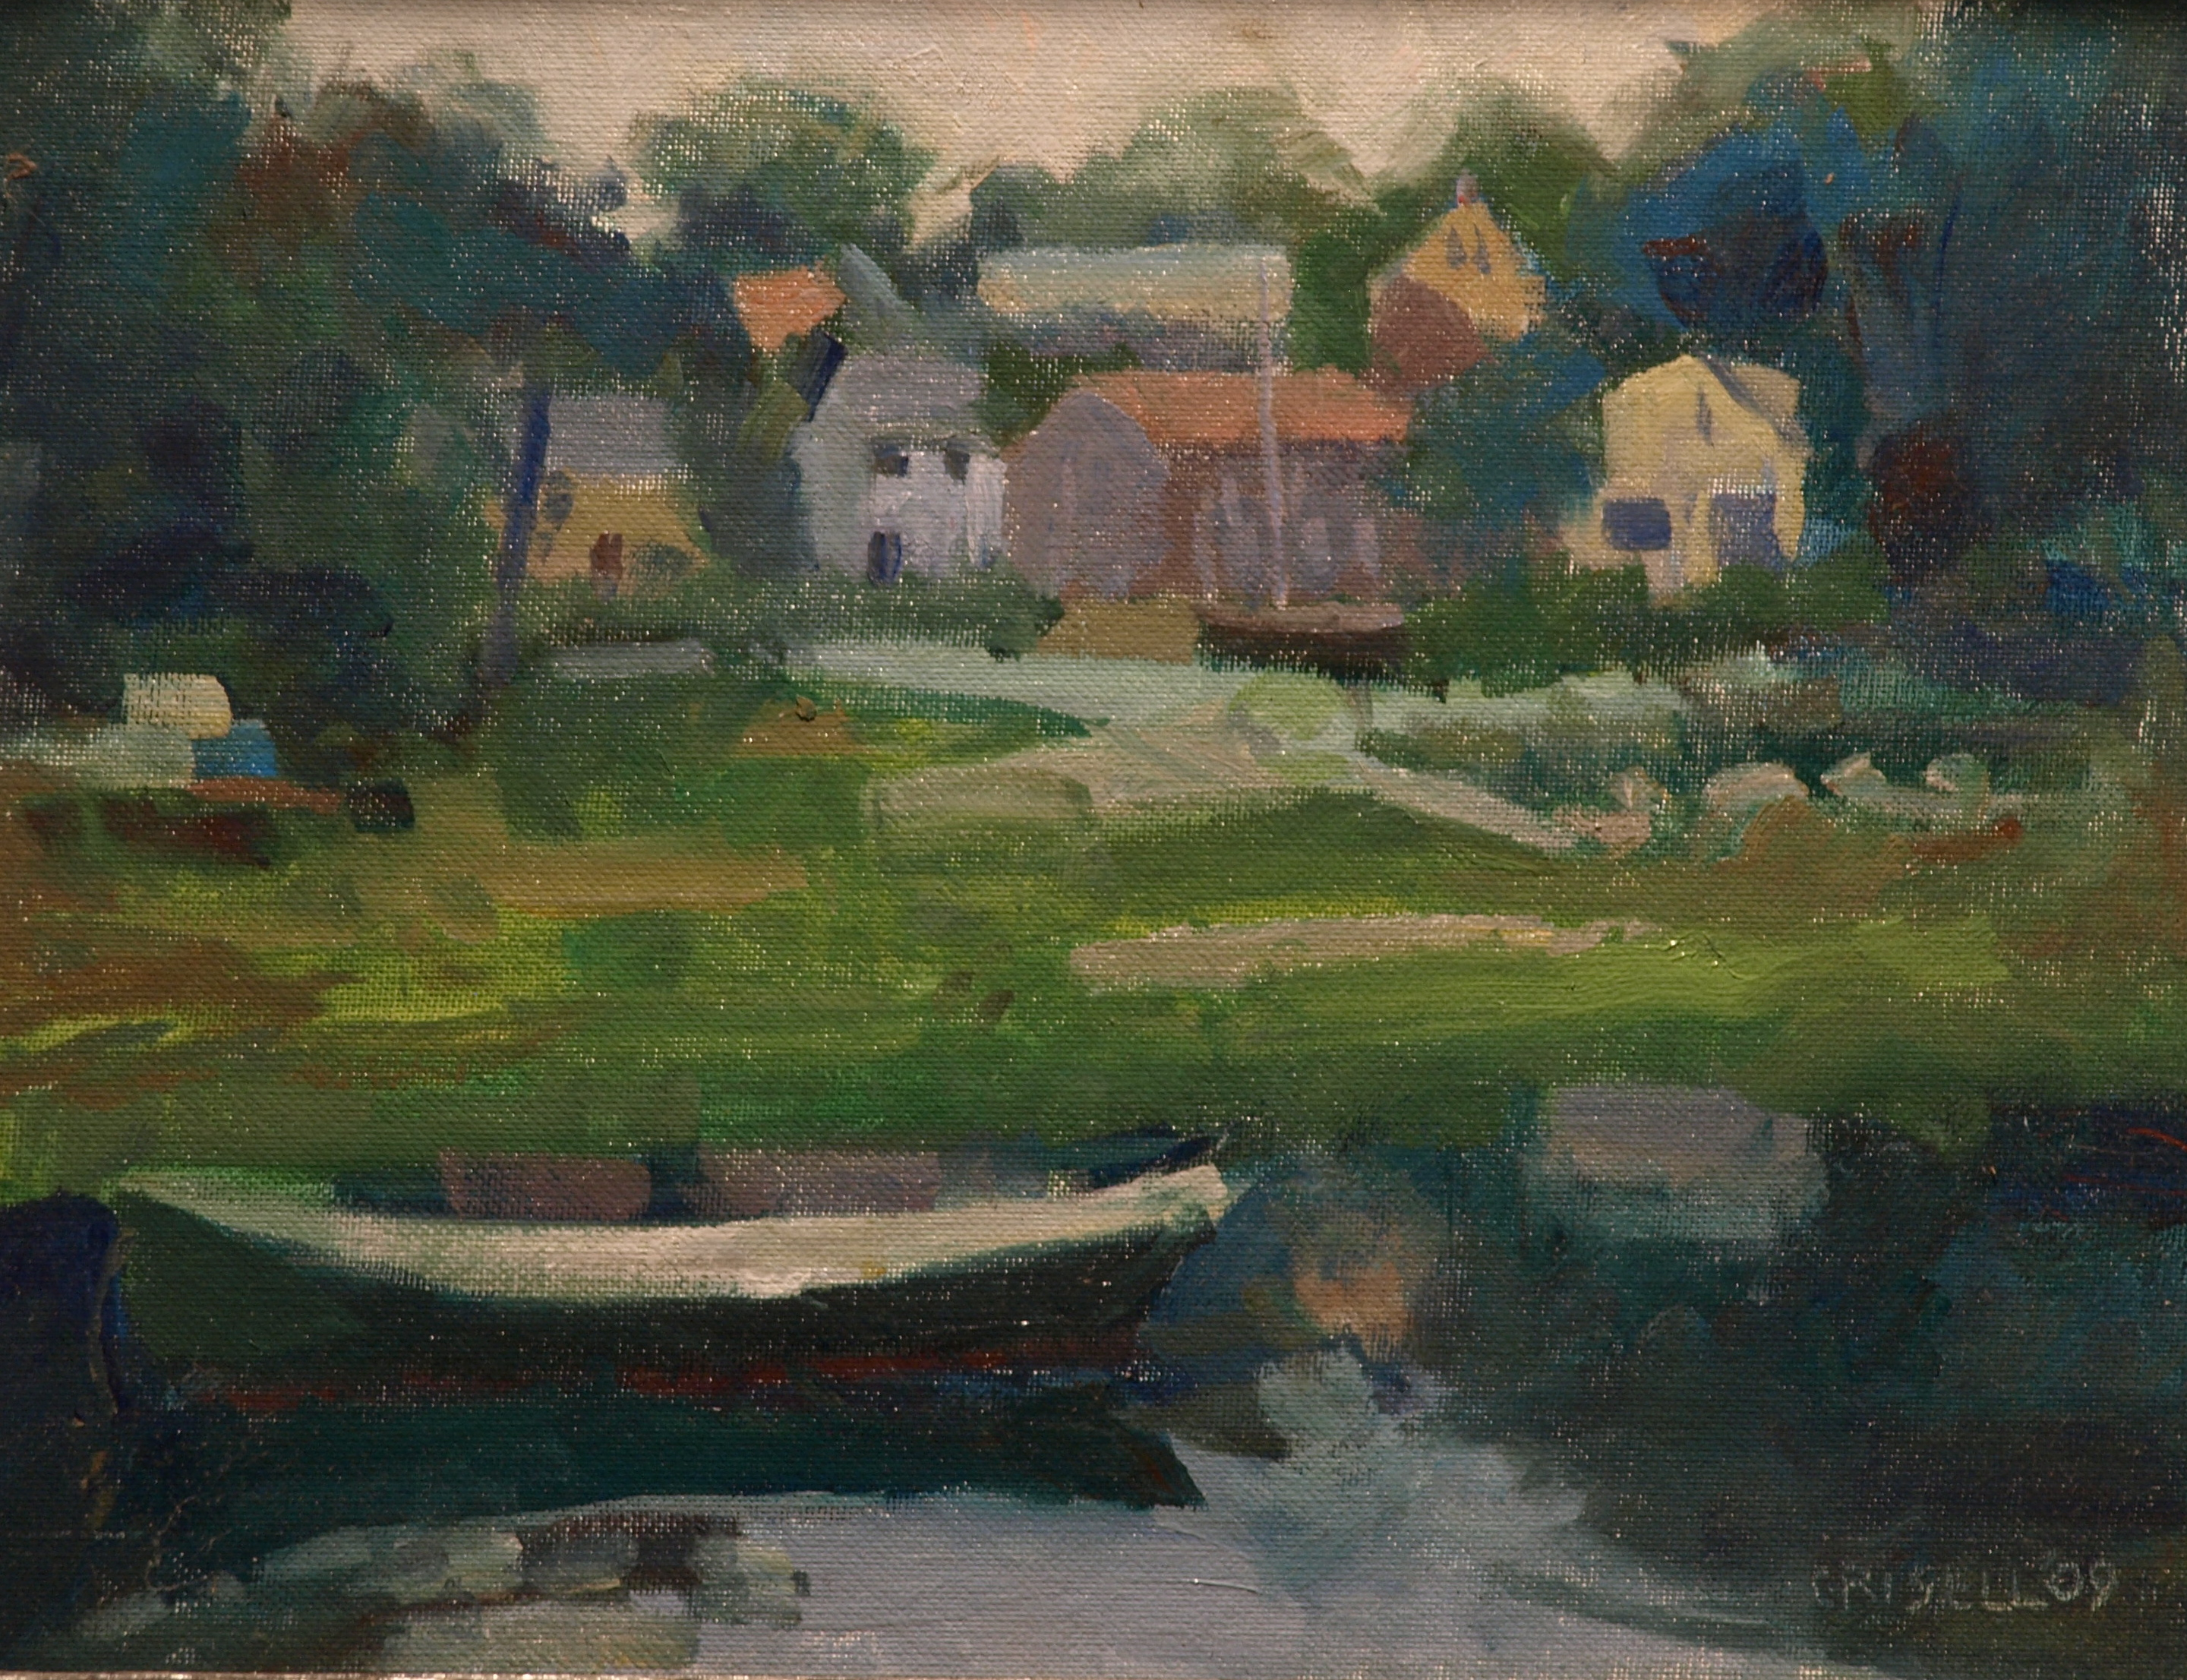 Gray Day - Cape Ann, Oil on Canvas on Panel, 11 x 14 Inches, by Susan Grisell, $275